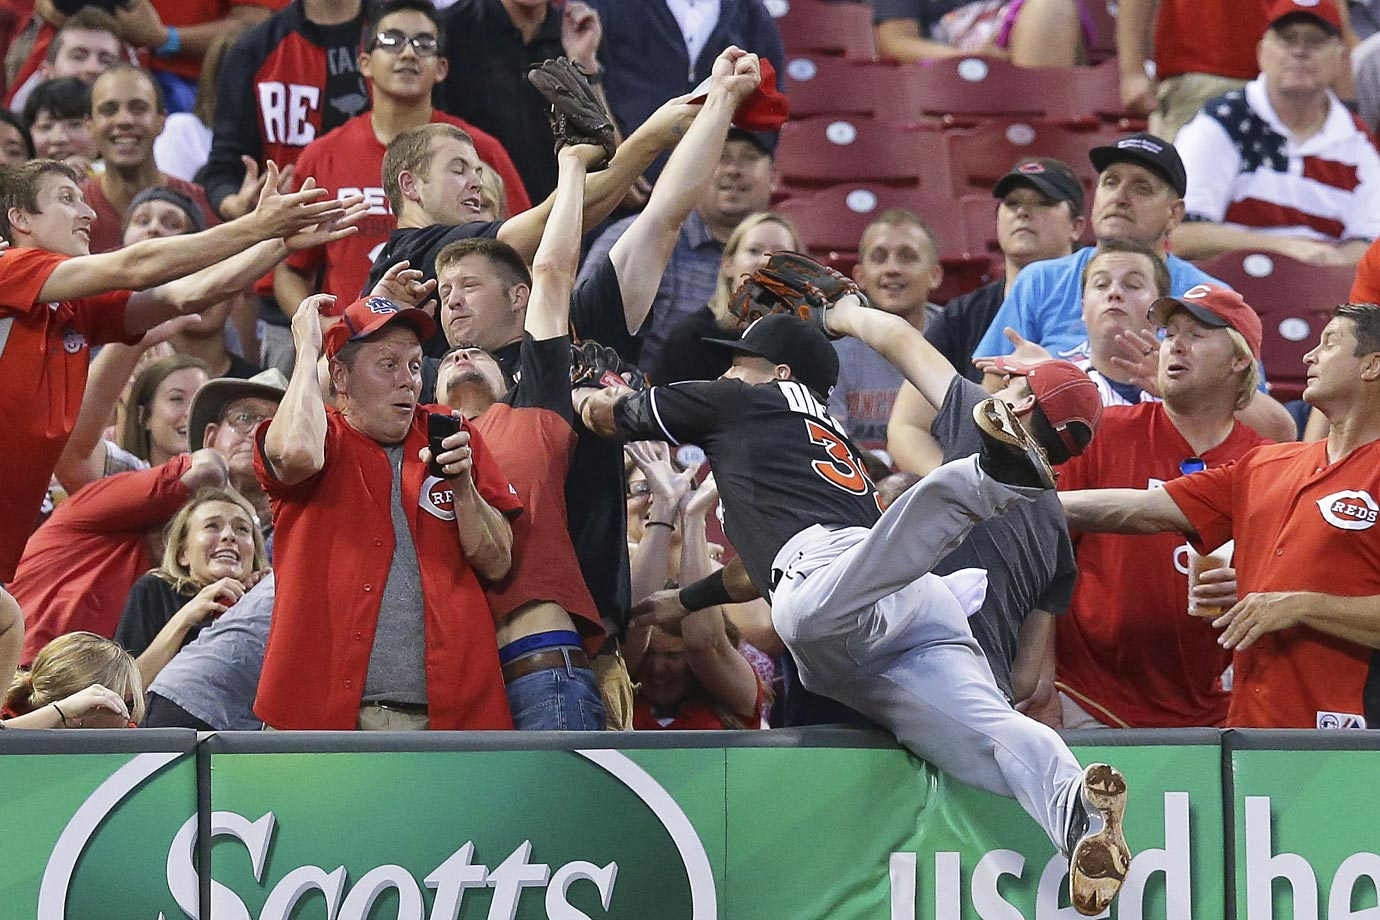 Derek Dietrich of the Marlins dives into the stands for a foul ball against the Cincinnati Reds.